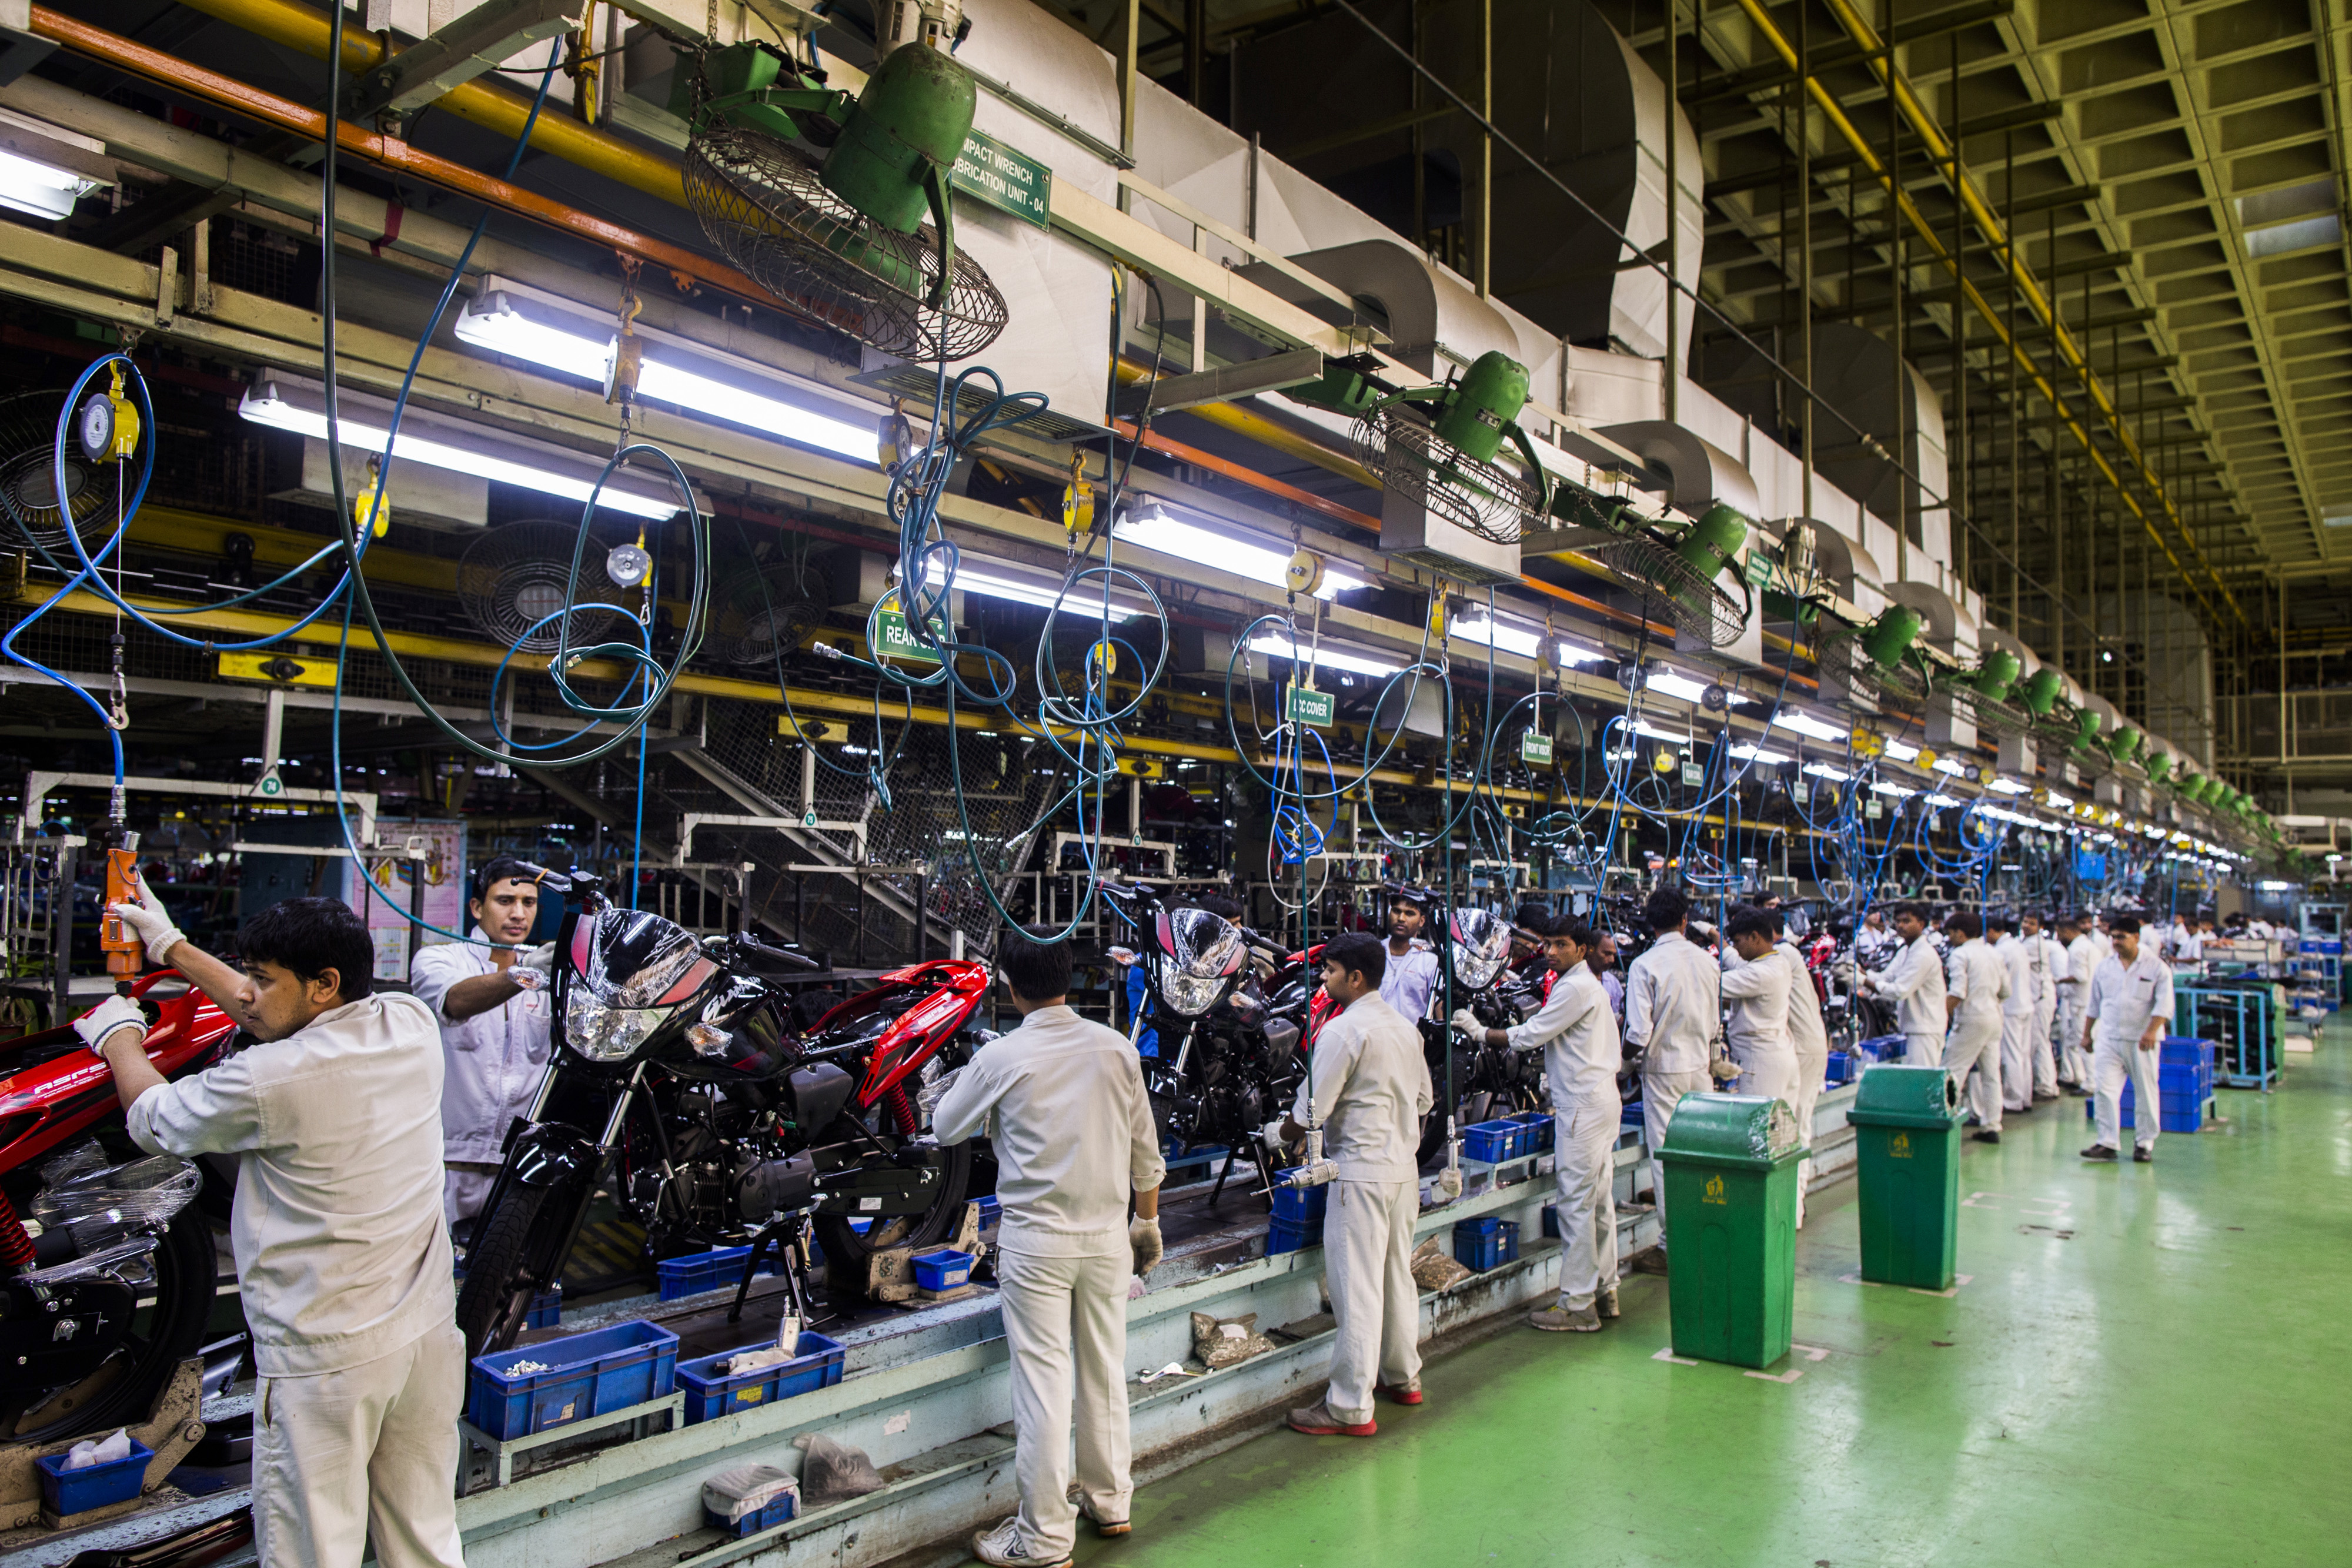 Workers assemble Hero Ignitor motorcycles on the assembly line of the Hero MotorCorp Ltd. manufacturing facility in Gurgaon, India, on June 11, 2014.